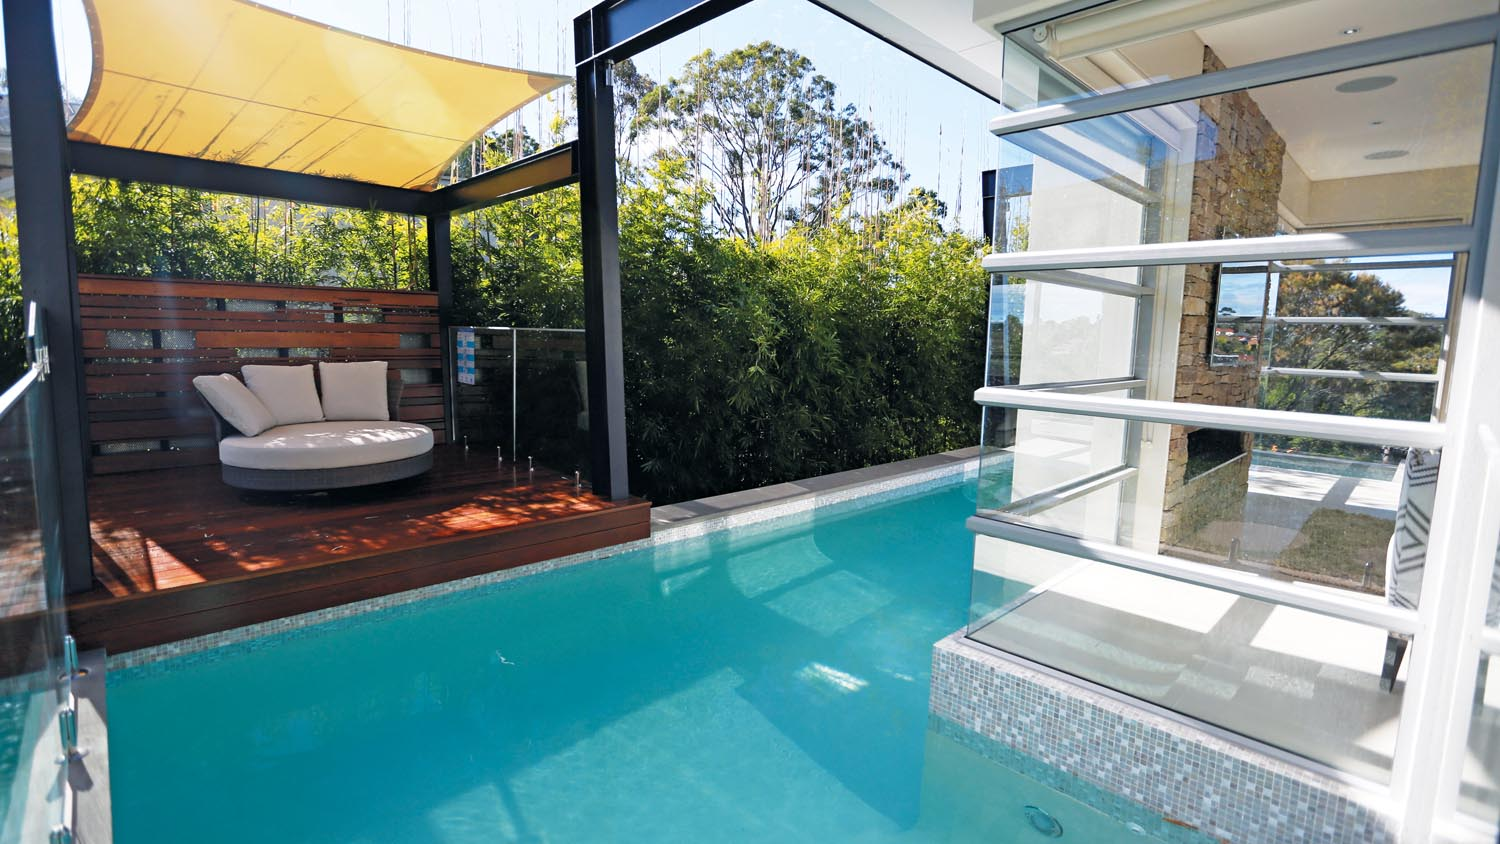 This pool wraps closely around the contemporary house, creating a perfect resort look